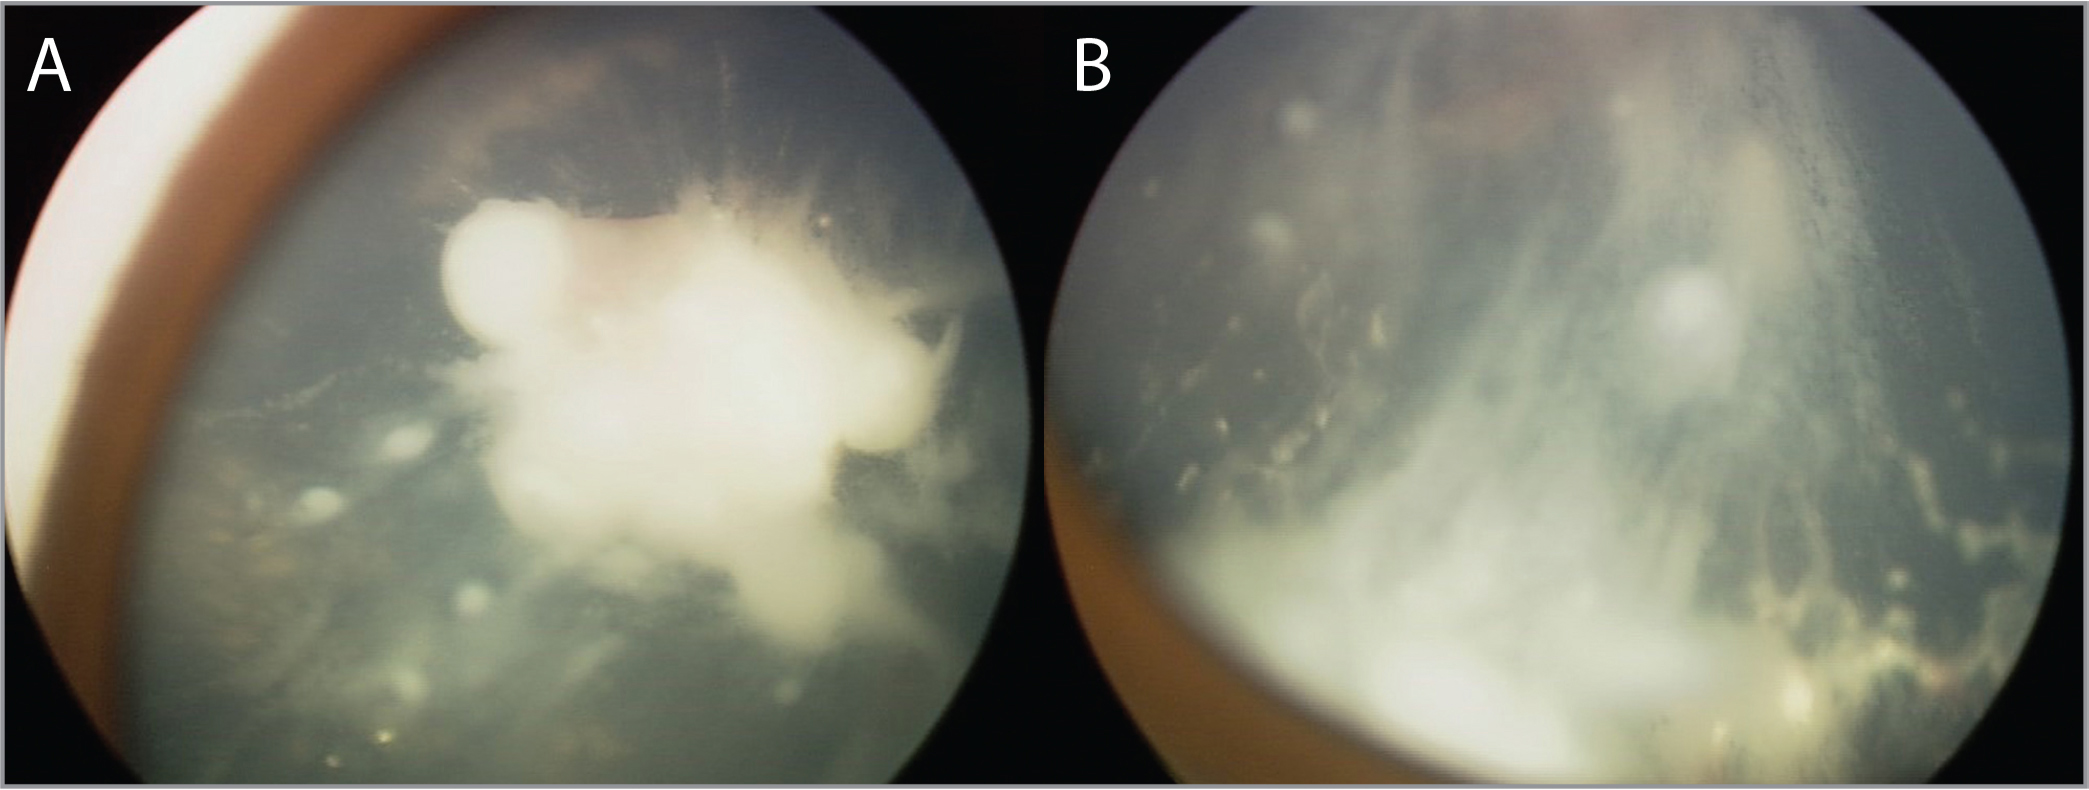 Regressing endophytic tumor with significant vitreous seeds 2 weeks after intra-arterial chemotherapy.